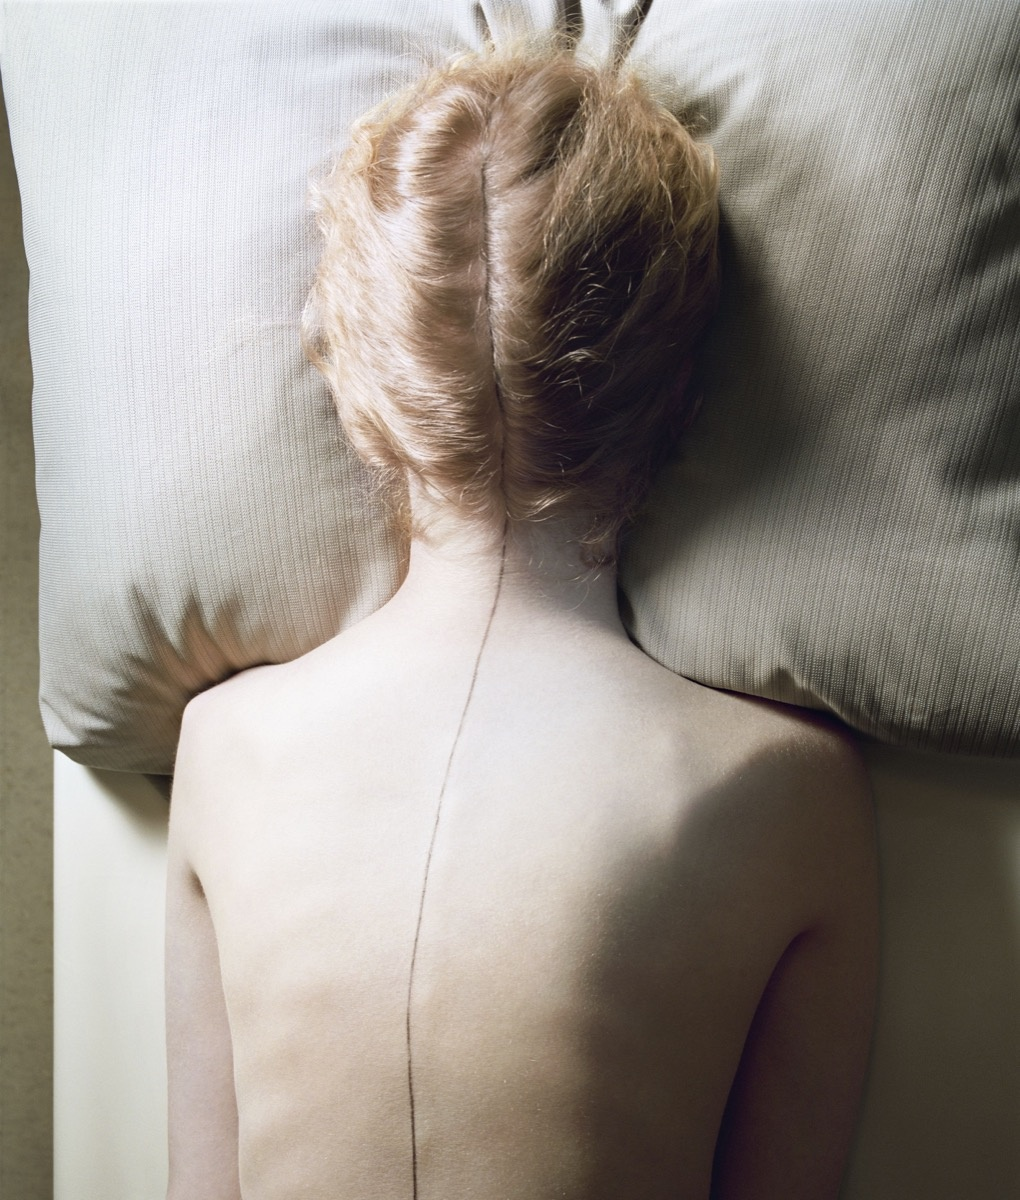 Jo Ann Callis, Untitled, from Early Color Portfolio, c. 1976. © Jo Ann Callis. Courtesy of the artist and ROSEGALLERY.